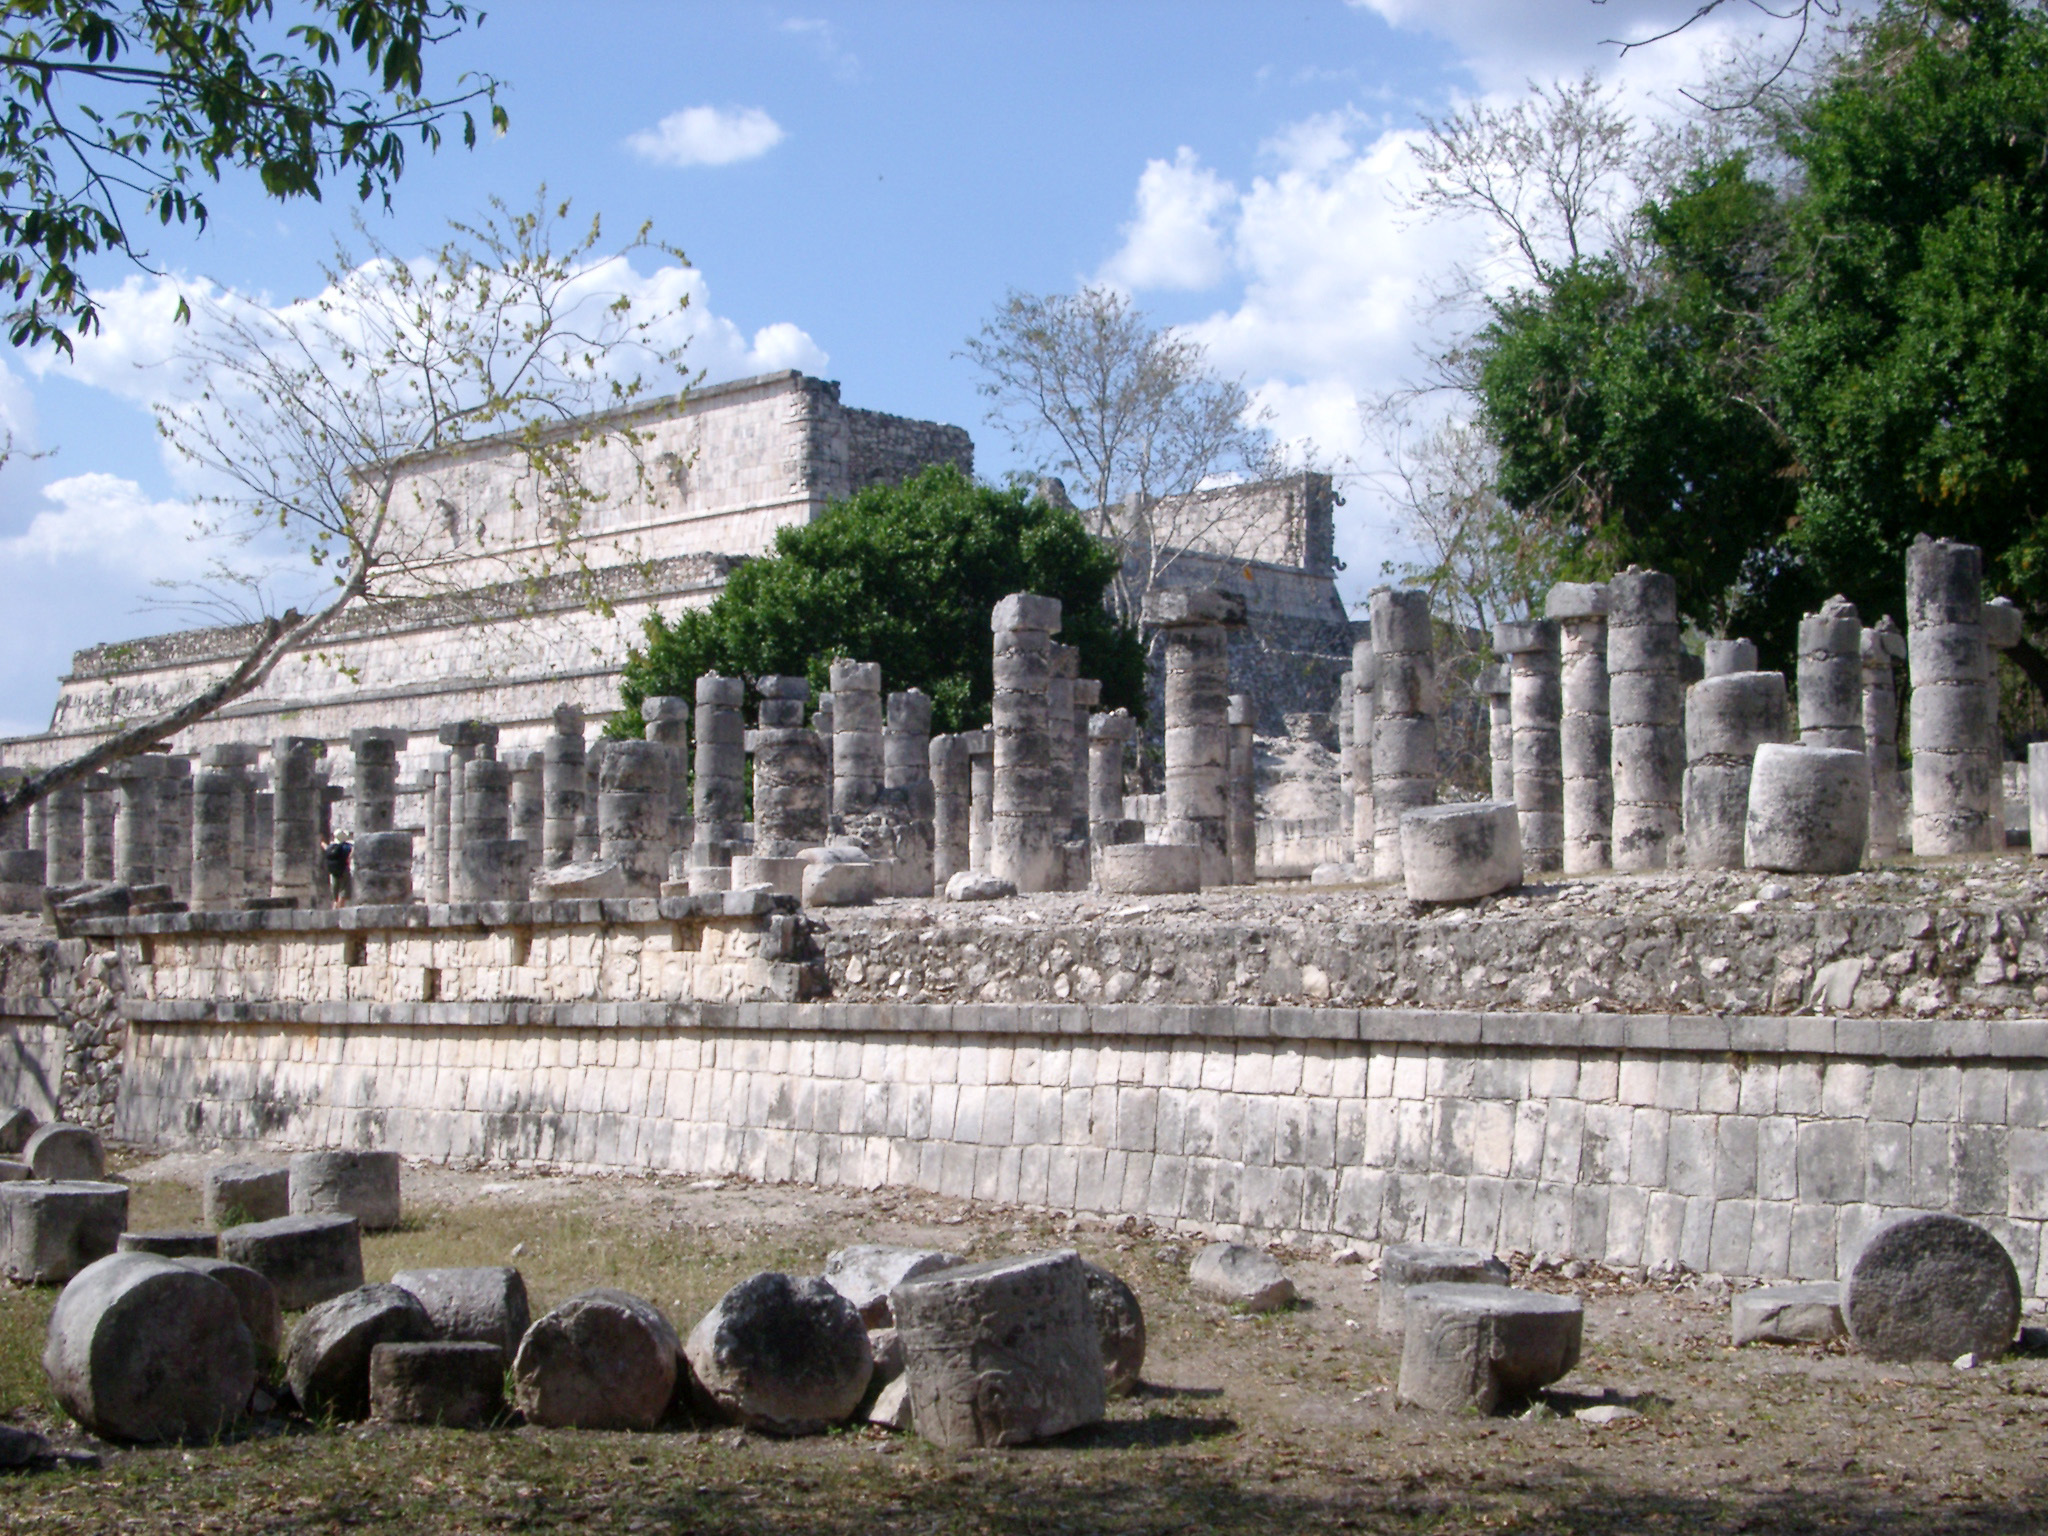 View of the stonework at the Chitzen Itza Mayan ruins with fallen stone, rows of columns and the Temple of the Warriors in the background, Yucatan Peninsula, Mexico